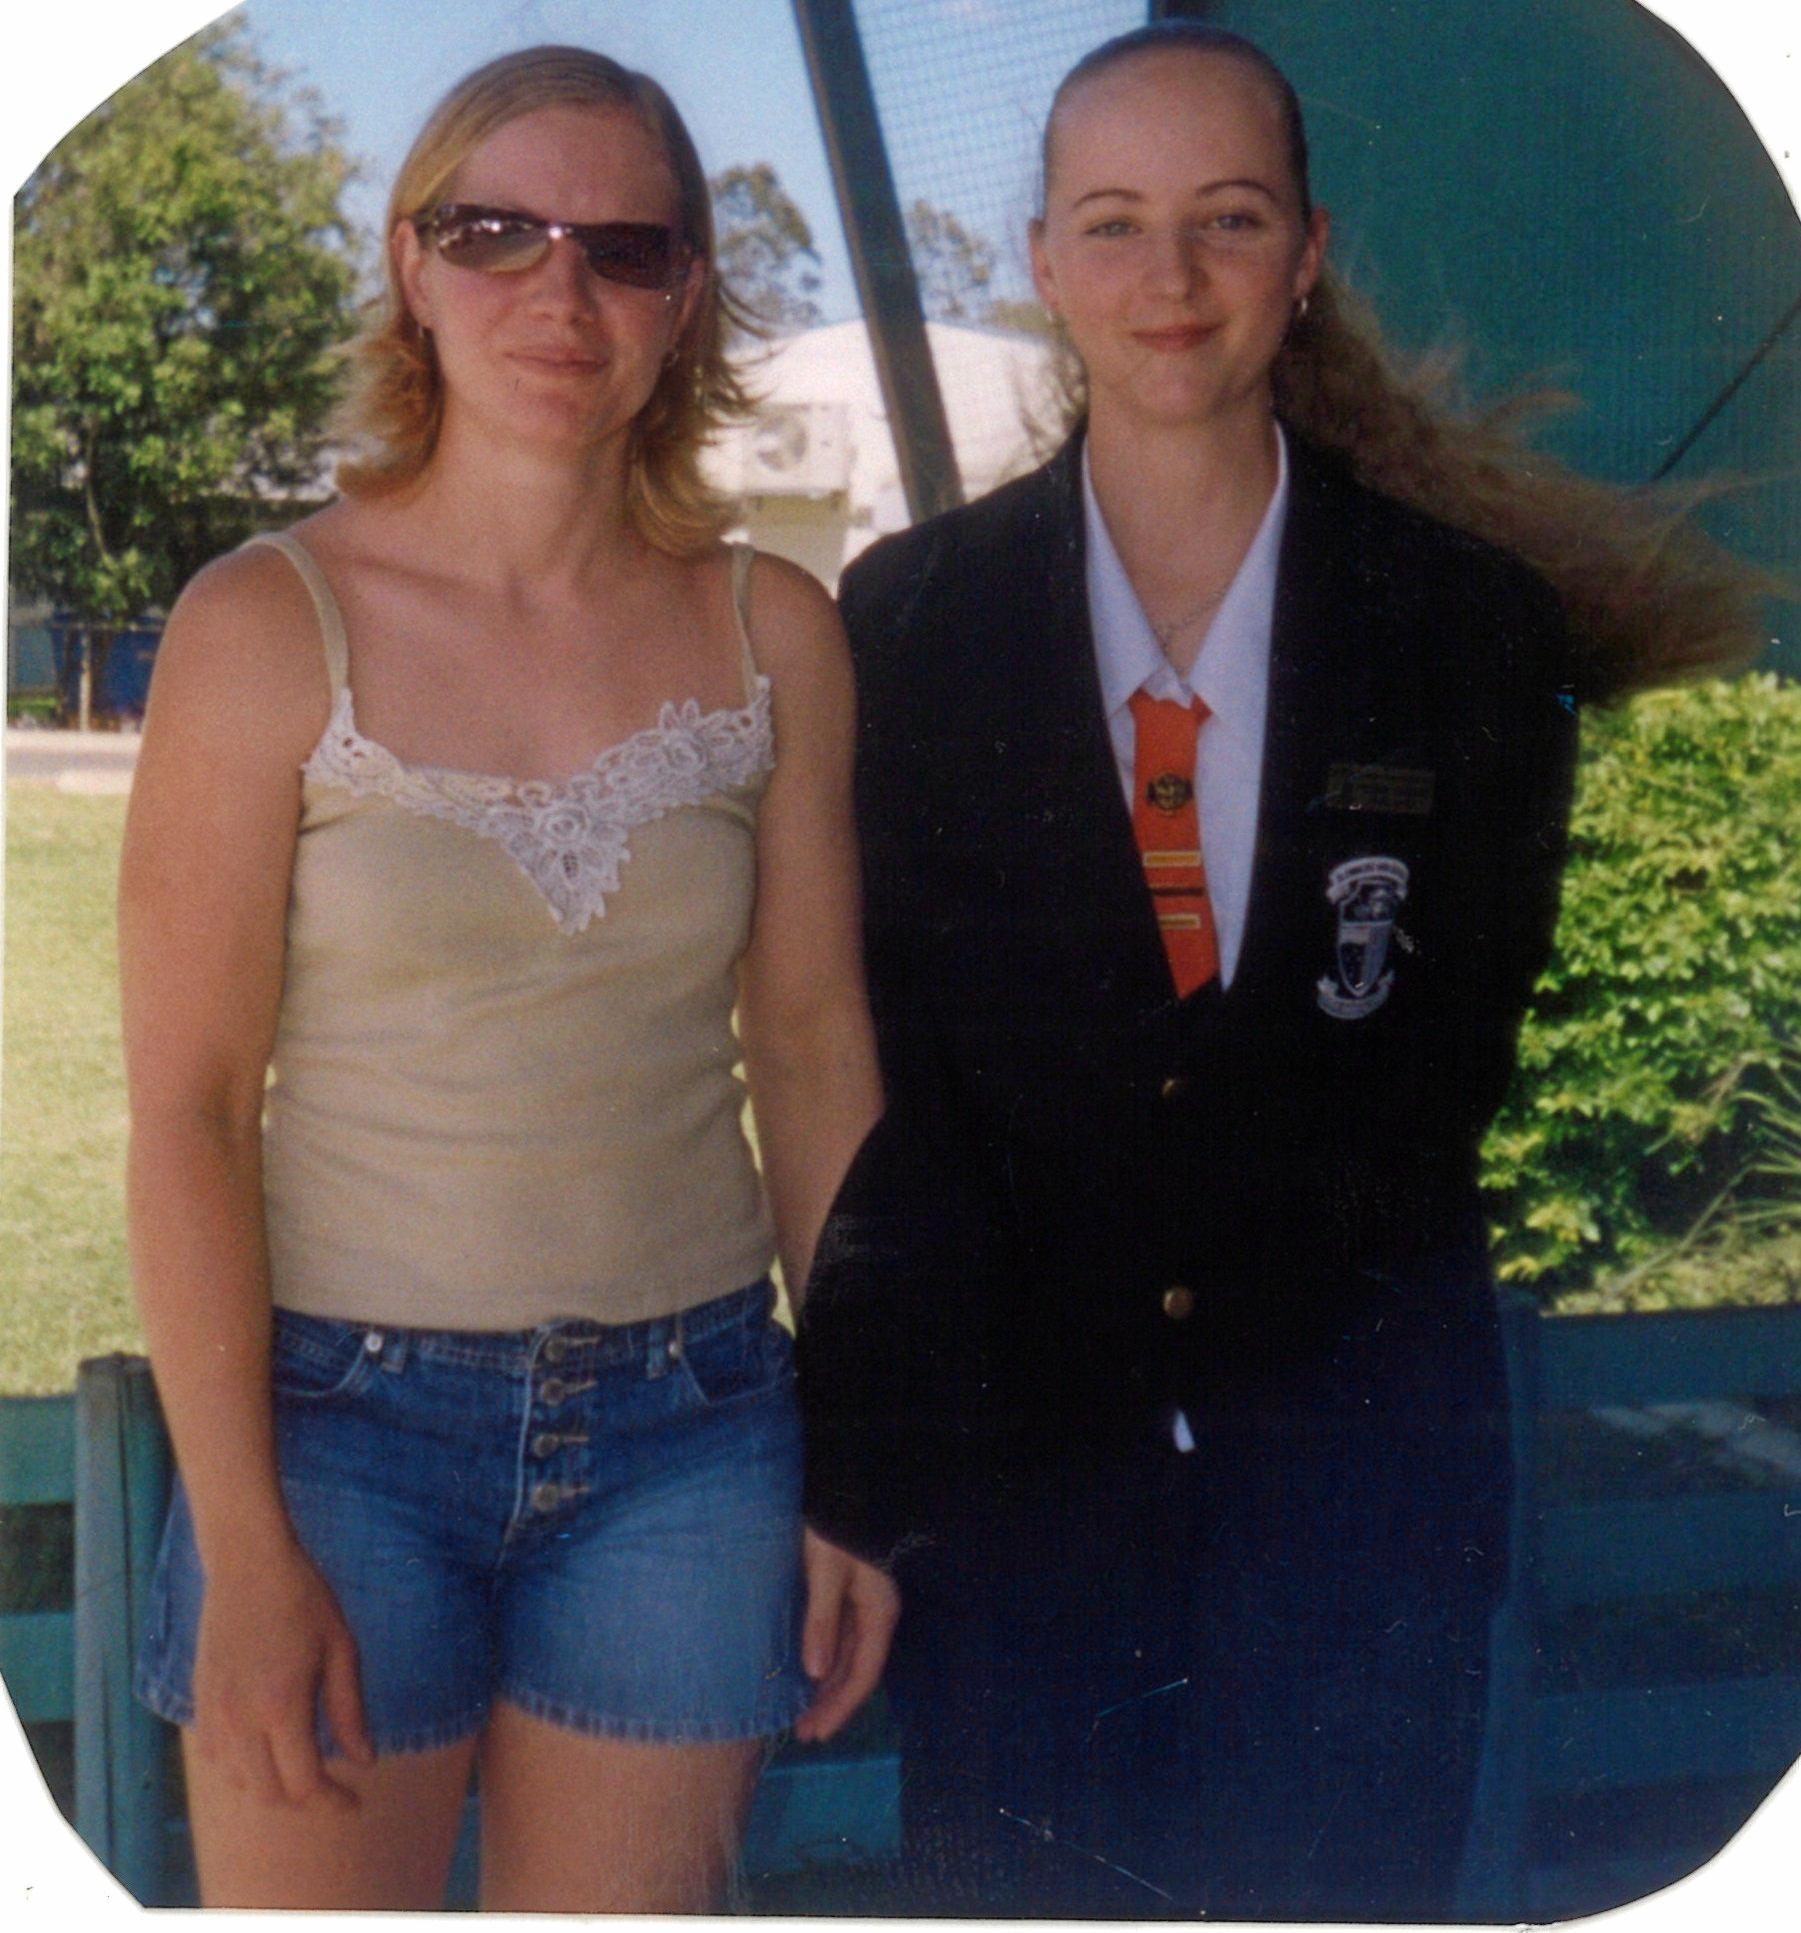 Belinda Sleeman (right) on her graduation day from Glenmore State High with sister Tanya.